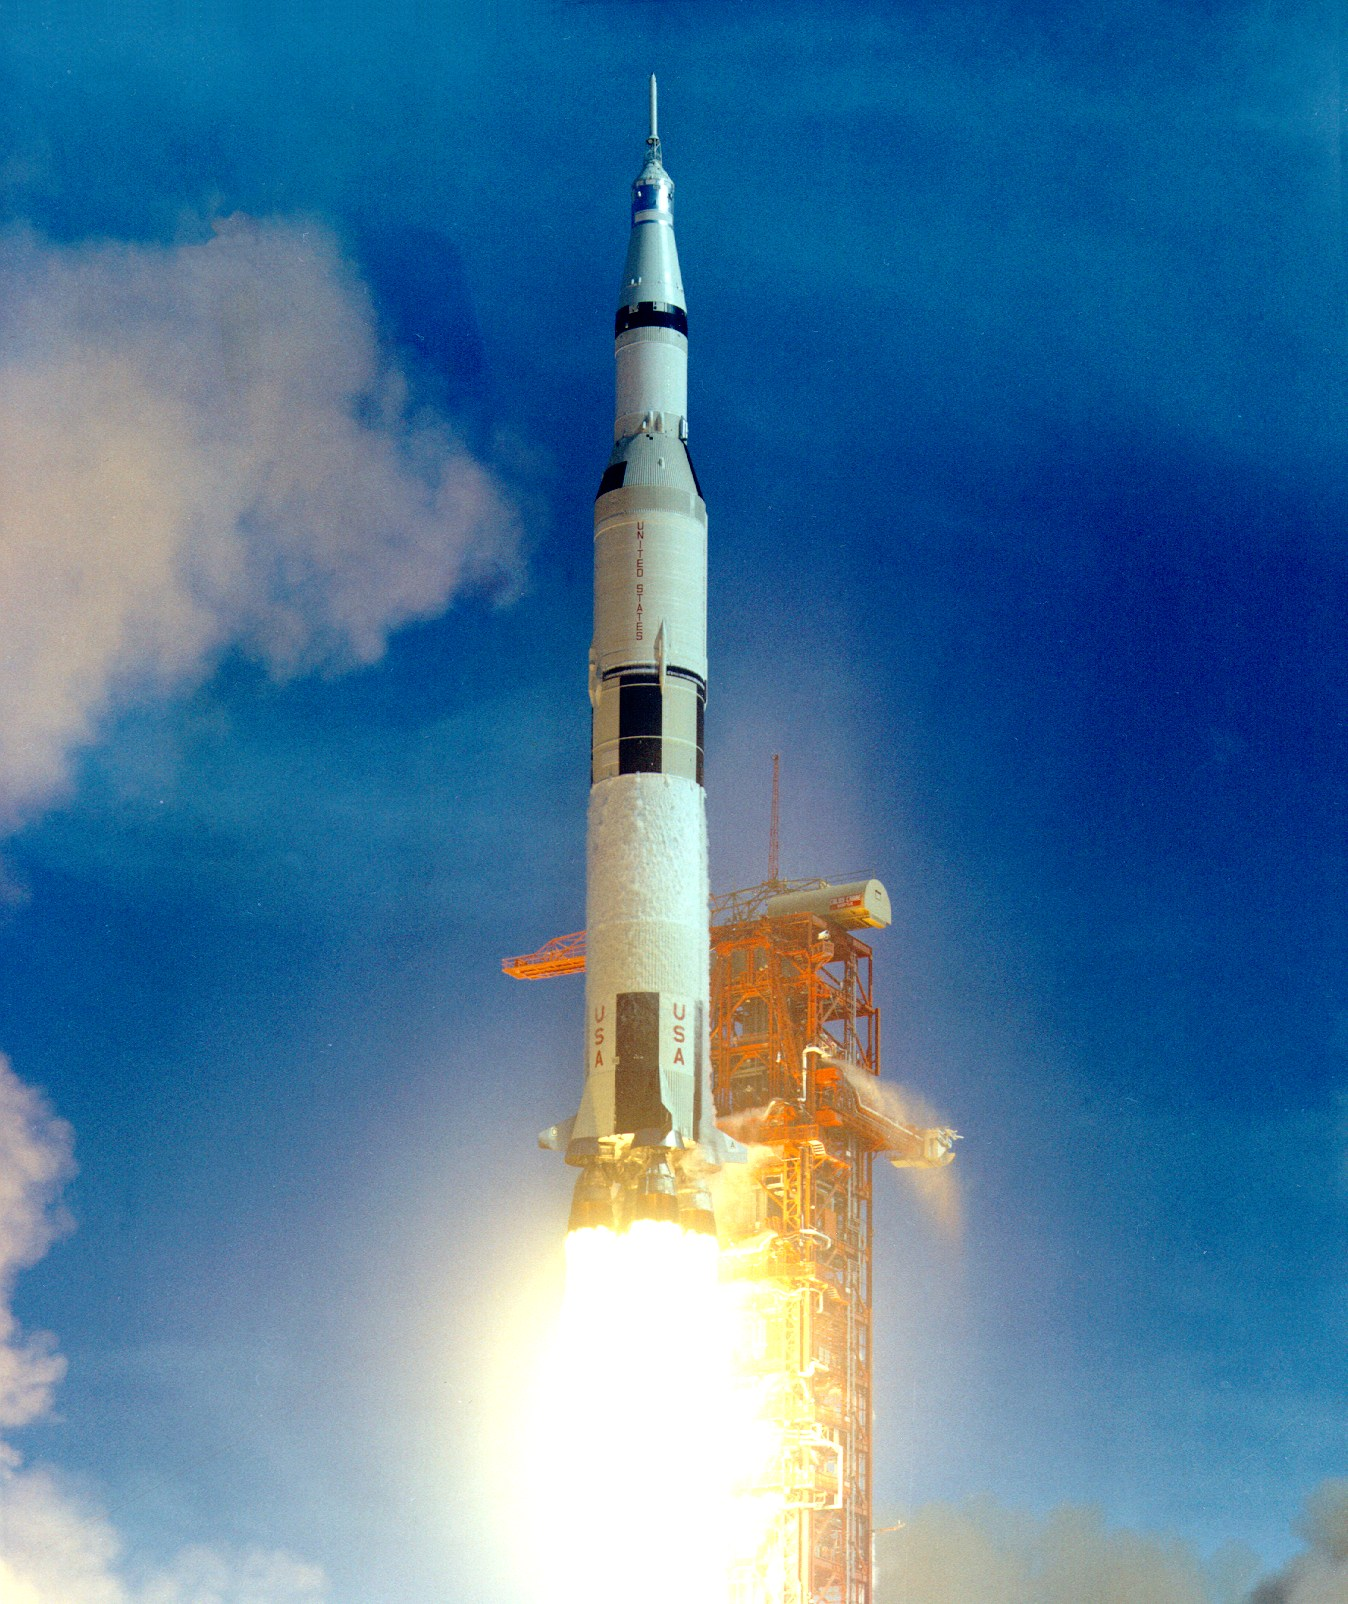 The Apollo Moon Rocket